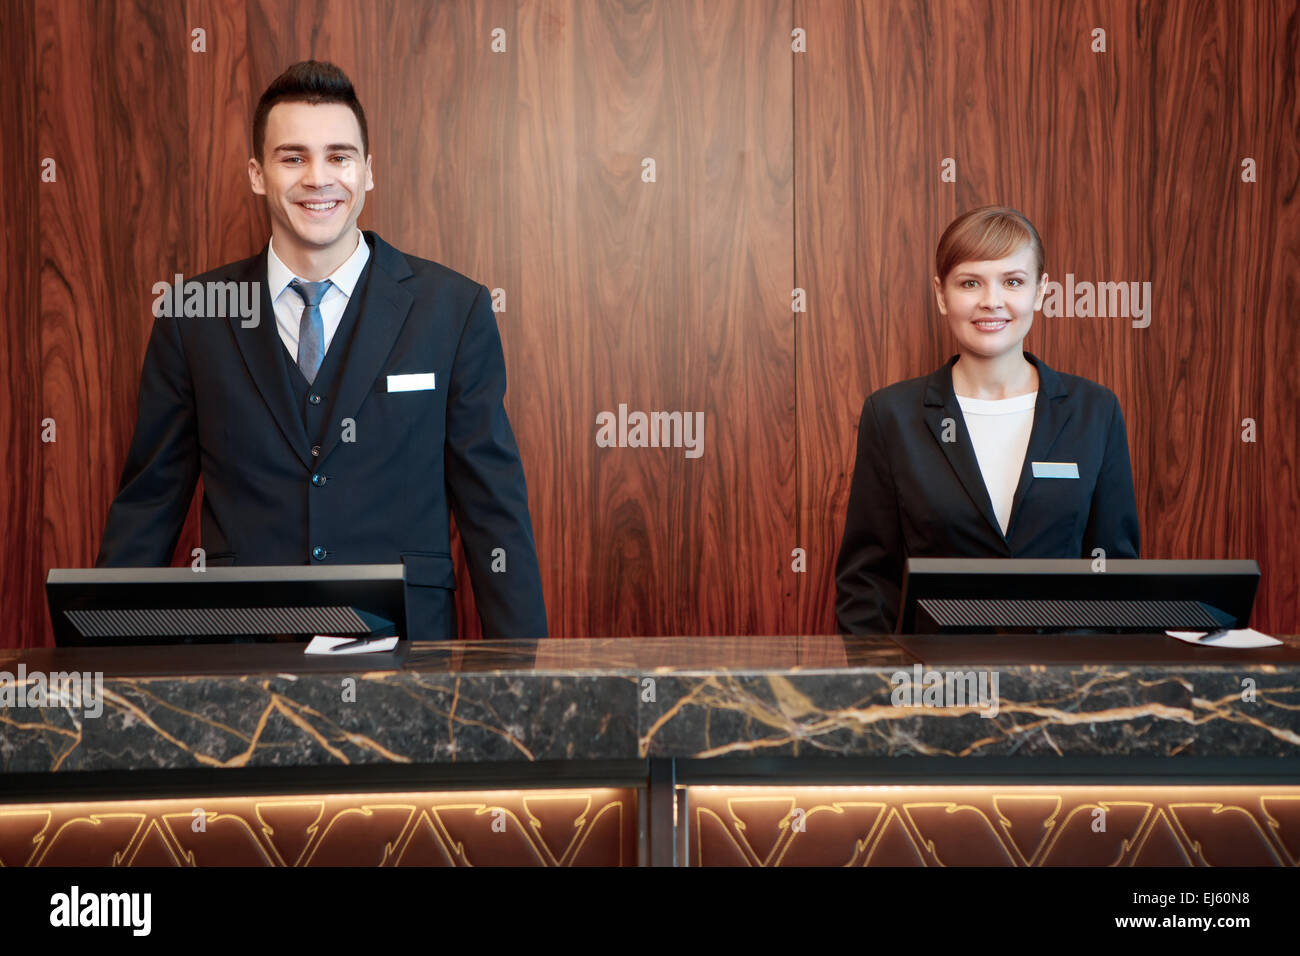 Hotel receptionists behind the counter - Stock Image